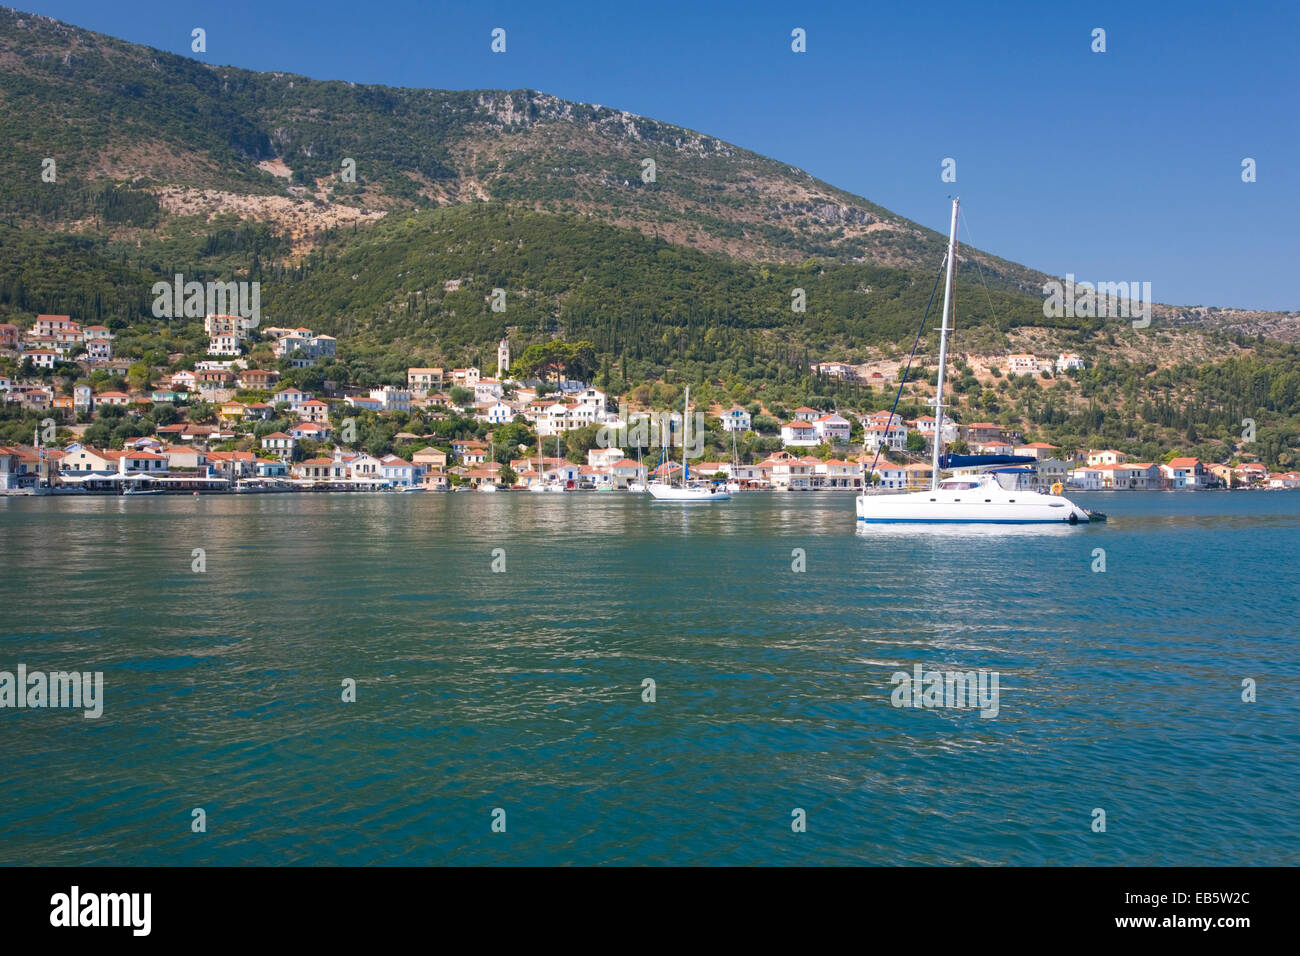 Vathy, Ithaca, Ionian Islands, Greece. View across the sheltered harbour. - Stock Image